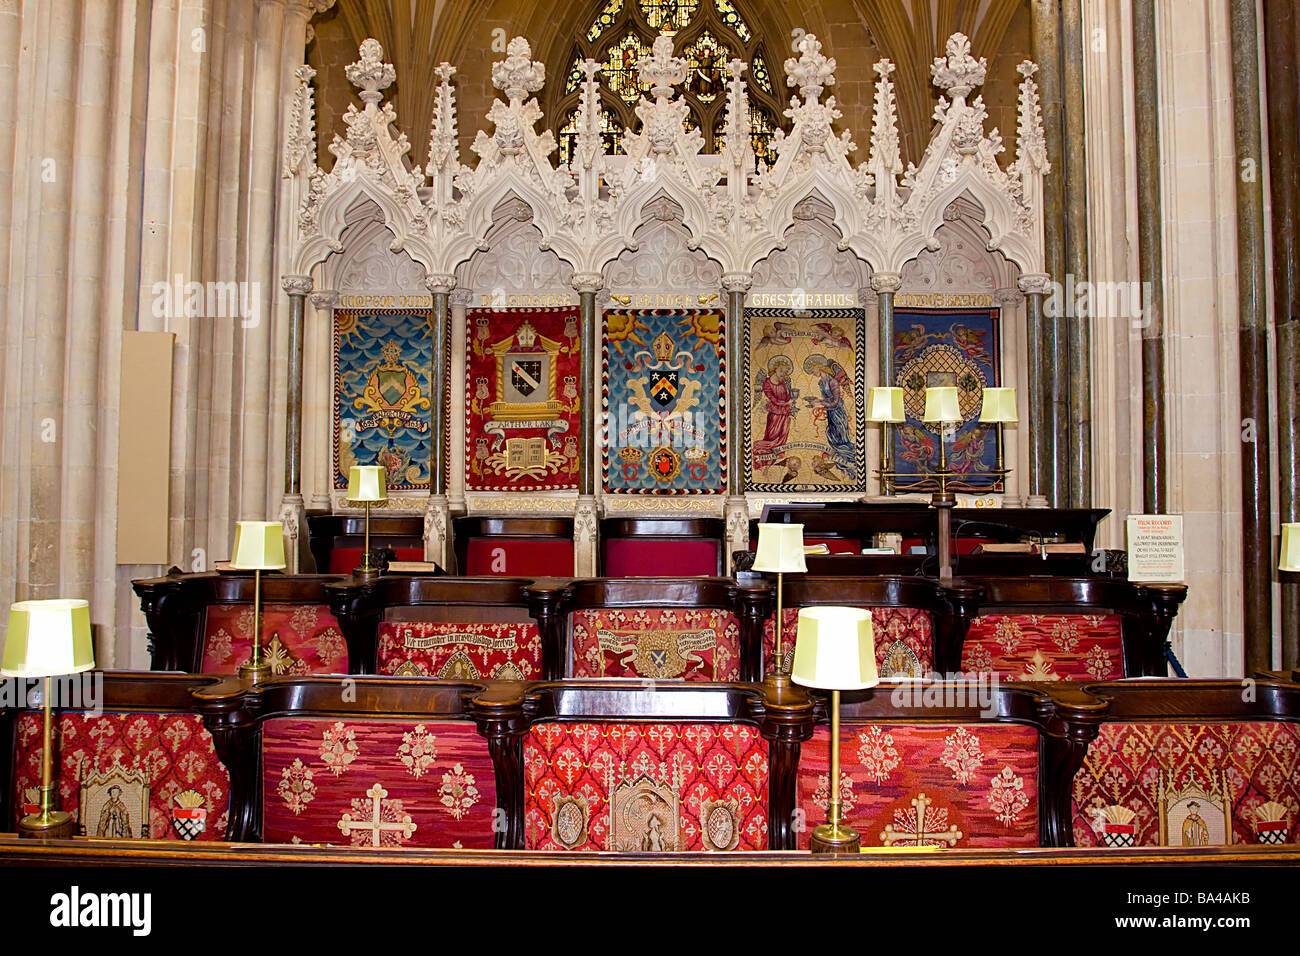 Wells Cathedrall choir stalls somerset england - Stock Image